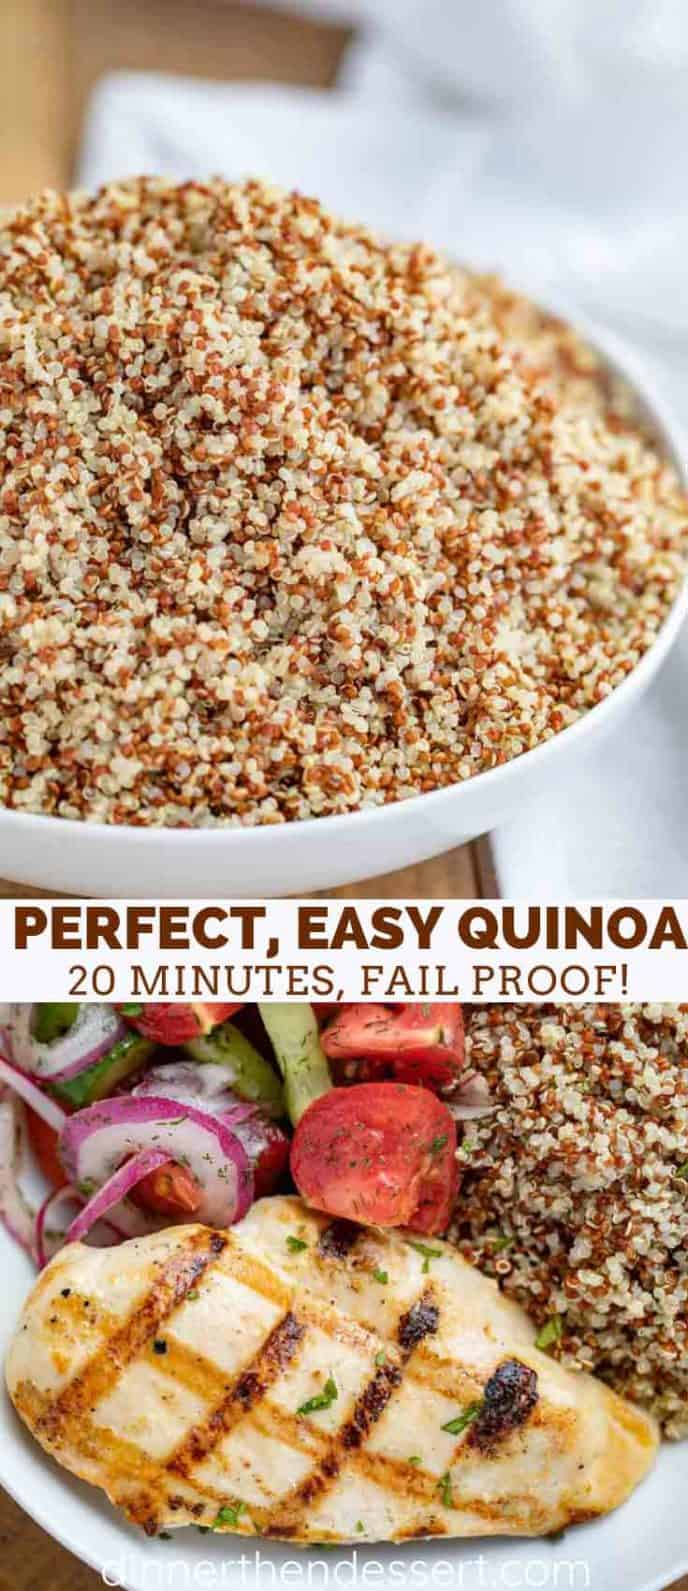 Quinoa Collage Photos